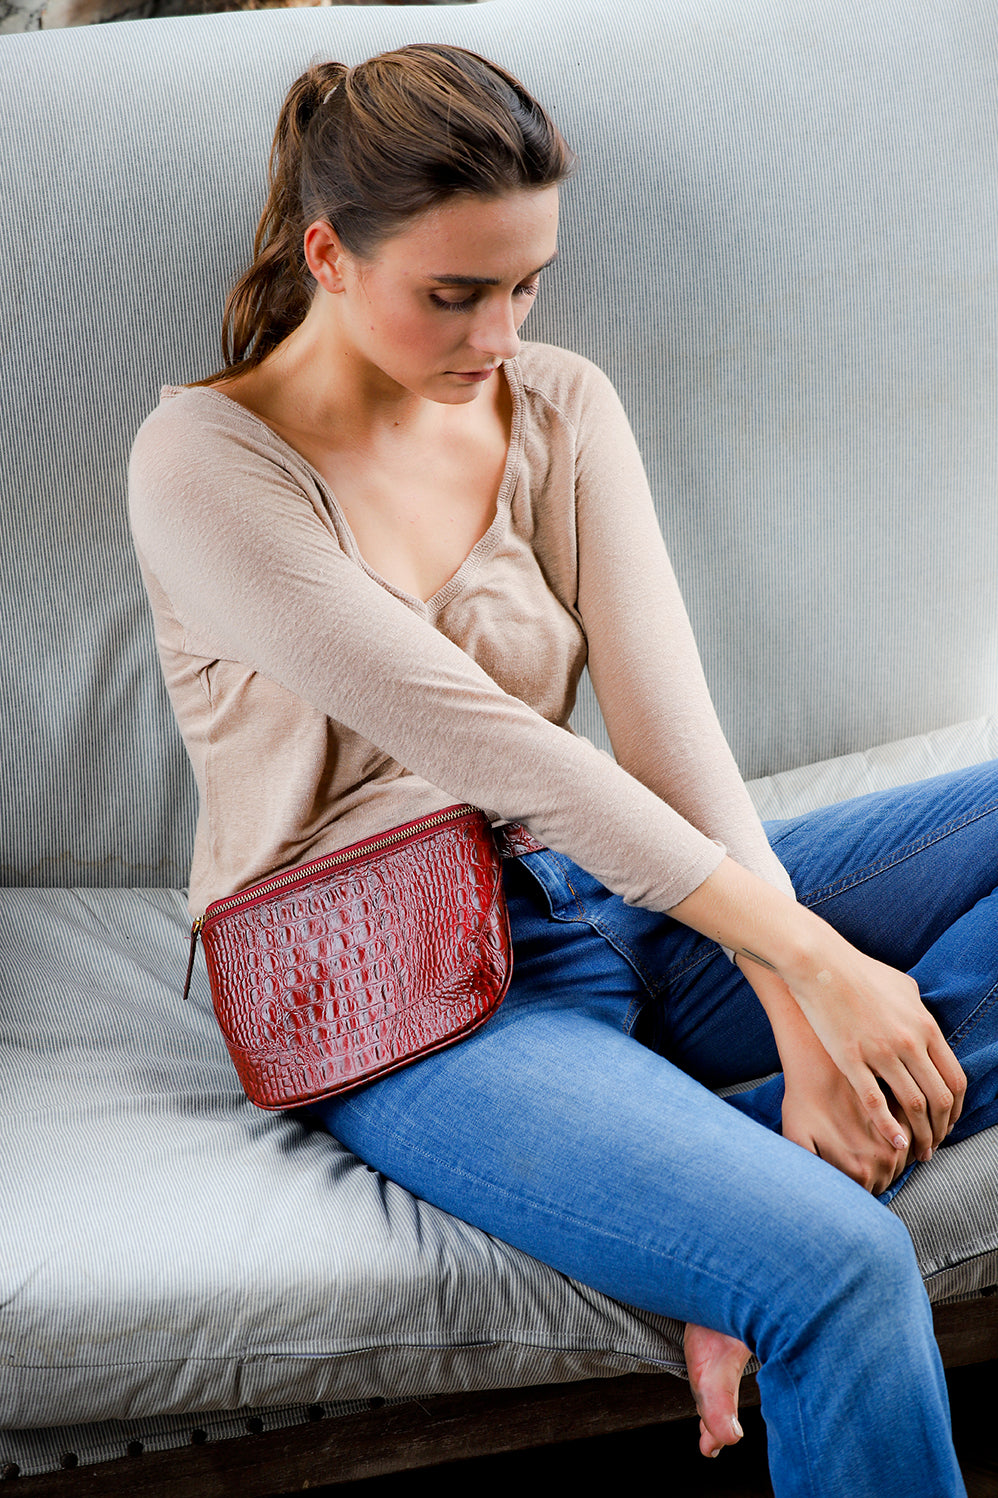 Burgundy Fanny pack, leather fanny pack, belted fanny pack, crocodile embossed leather fanny pack, CV fanny pack, Clare V fanny pack